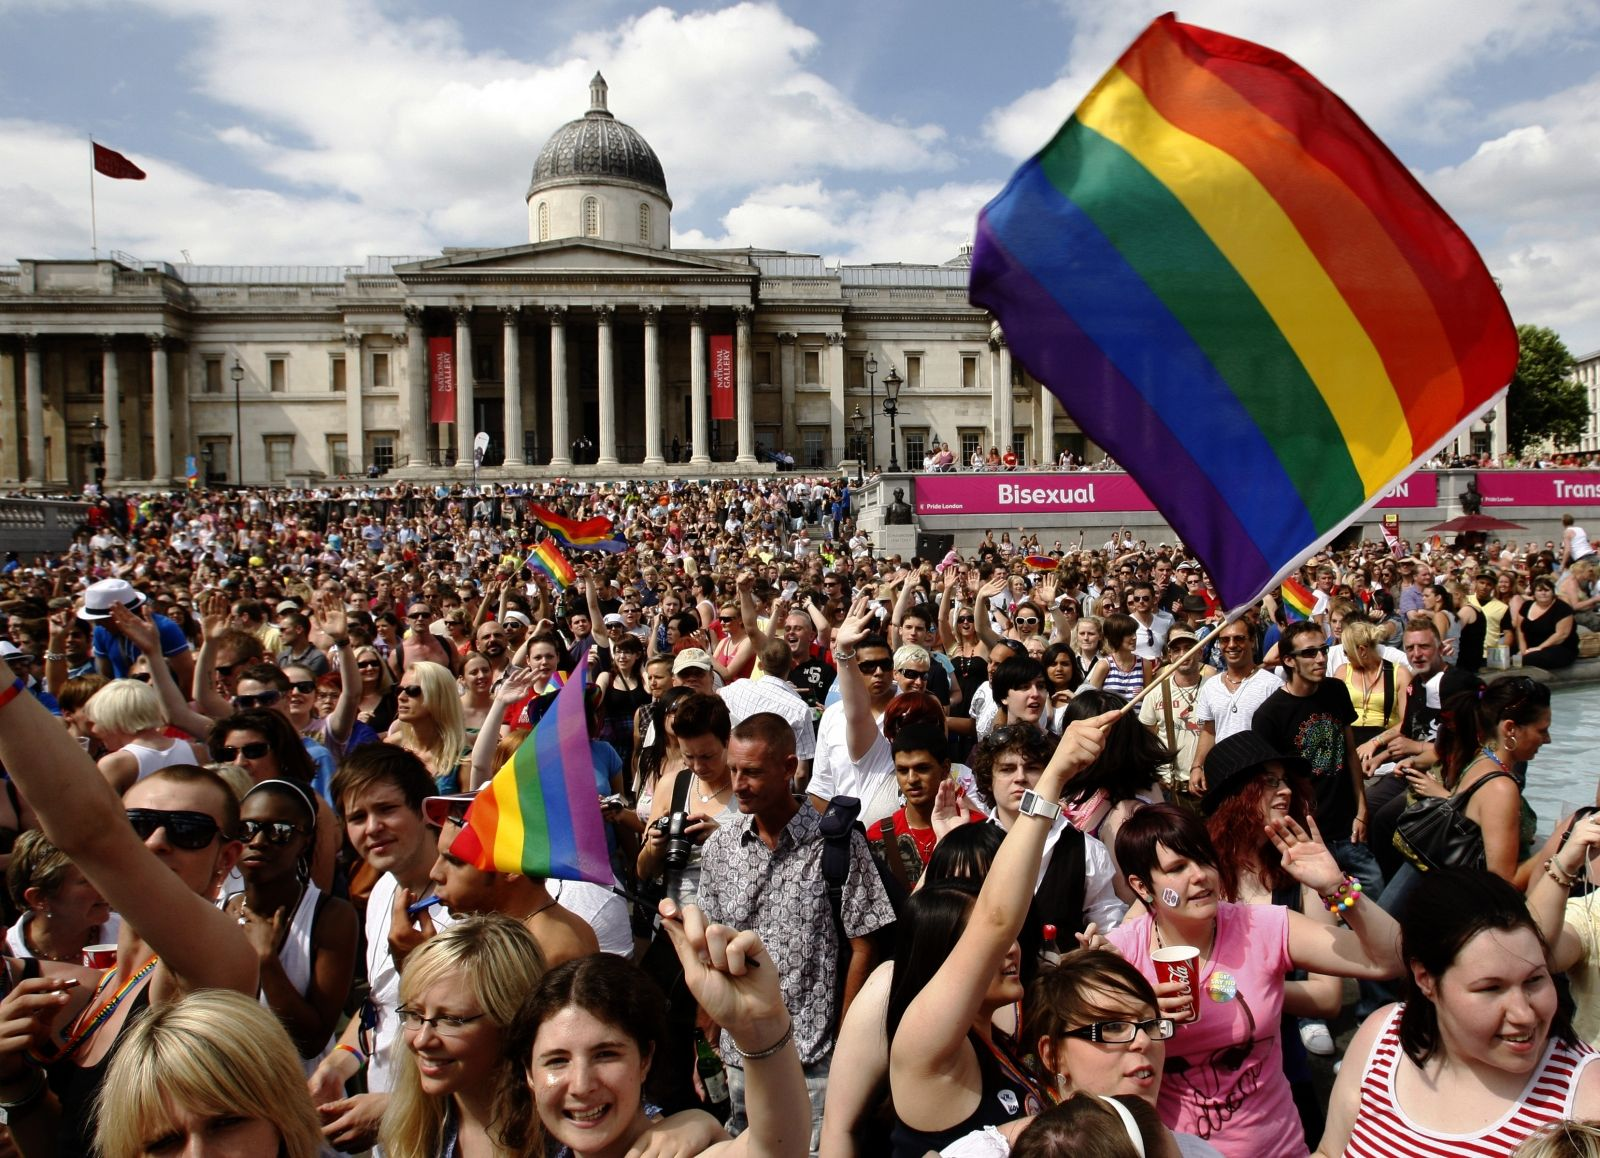 Scotland tops gay rights league table